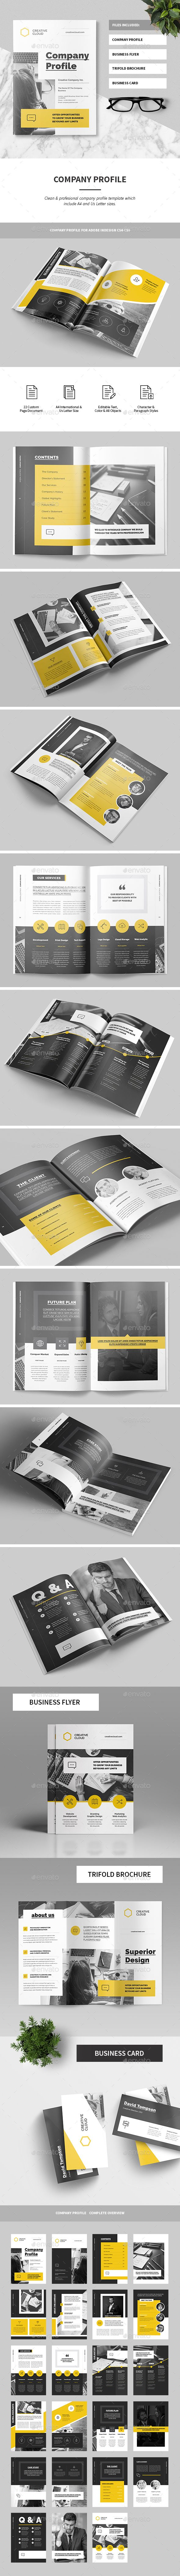 Company Profile Brochure Template 	InDesign INDD. Download here: https://graphicriver.net/item/company-profile/17338639?ref=ksioks